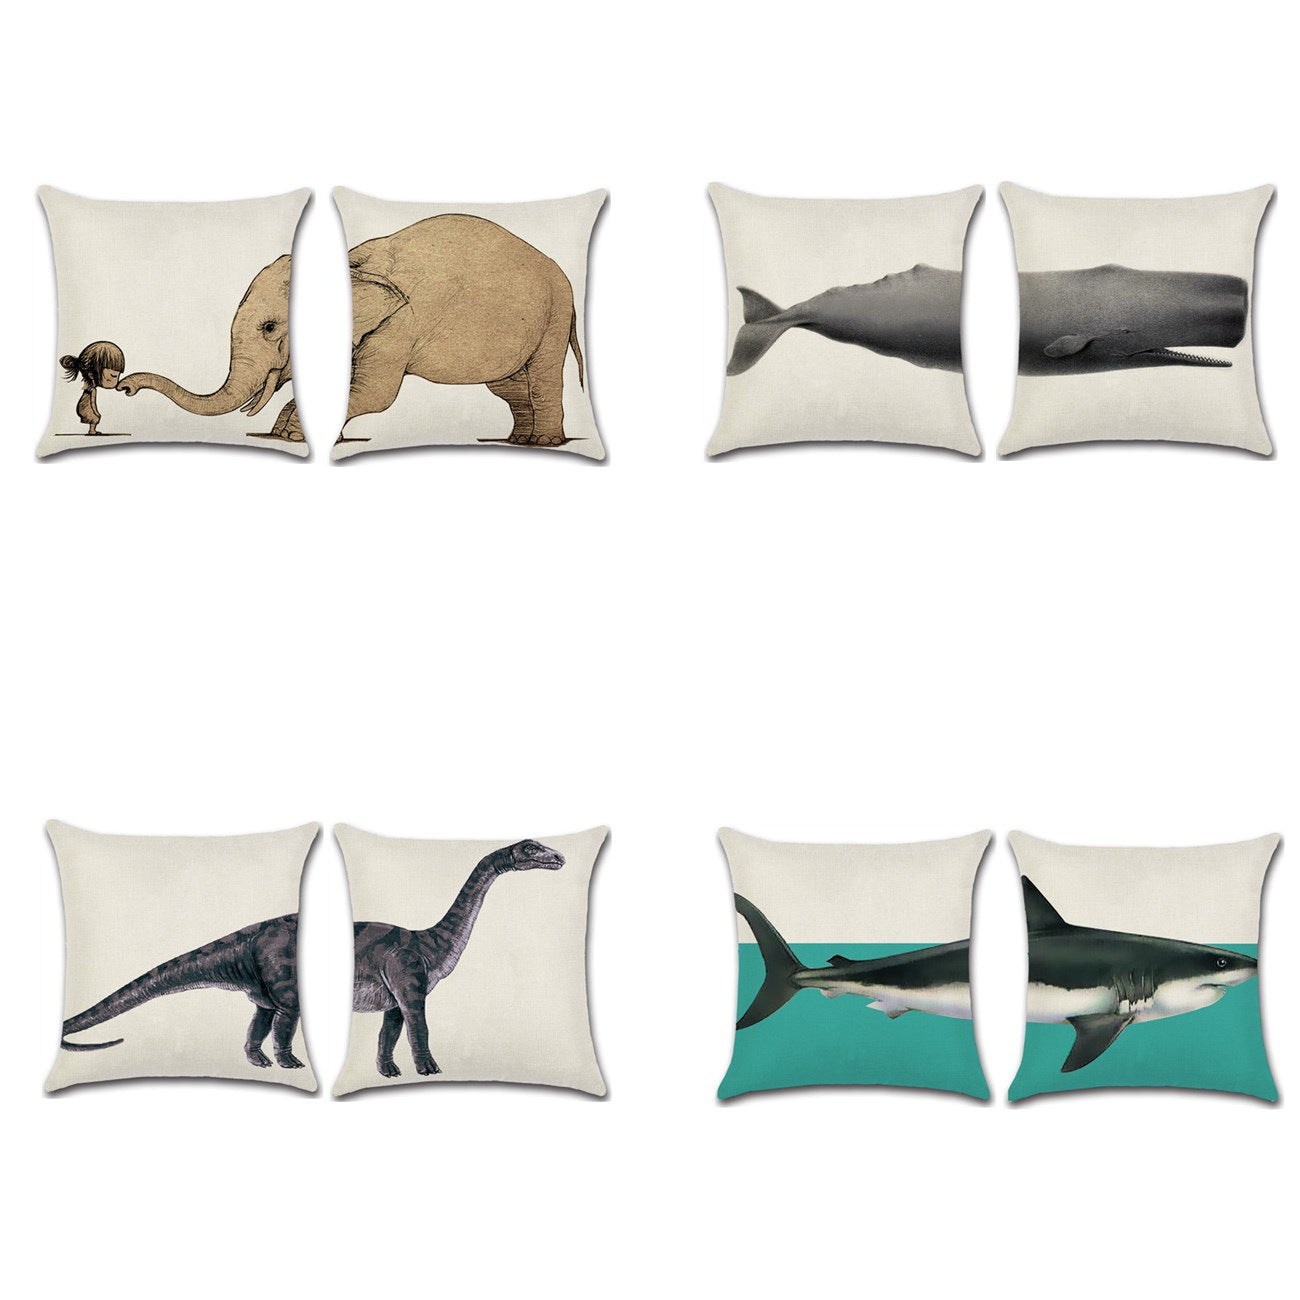 Double Trouble Animal Pillow Covers